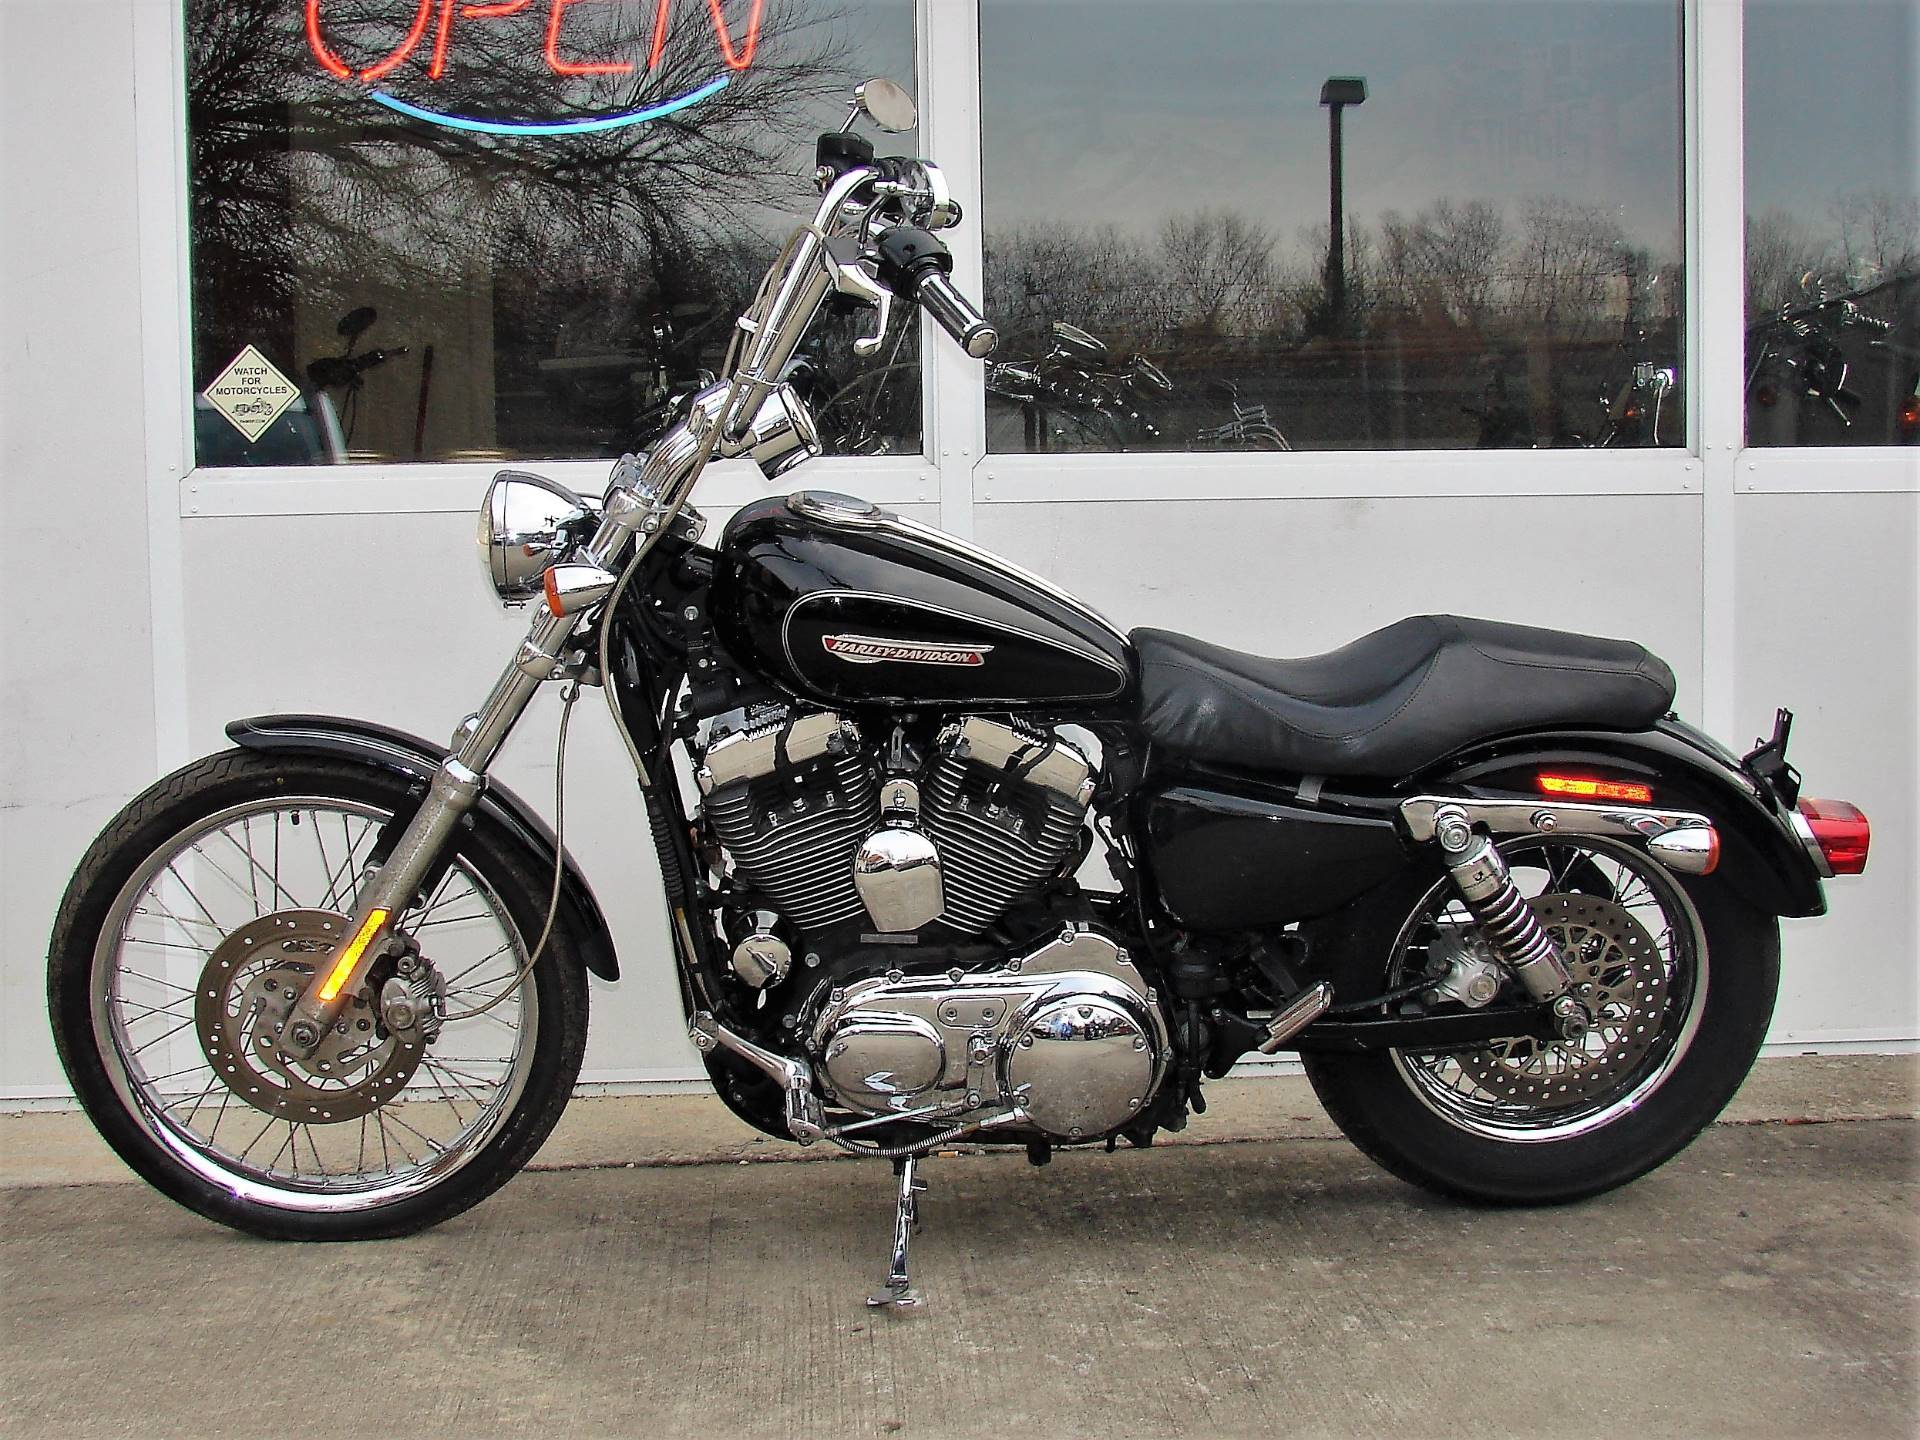 2008 Harley-Davidson 1200cc Sportster  (Black with Silver Pinstripe) in Williamstown, New Jersey - Photo 13